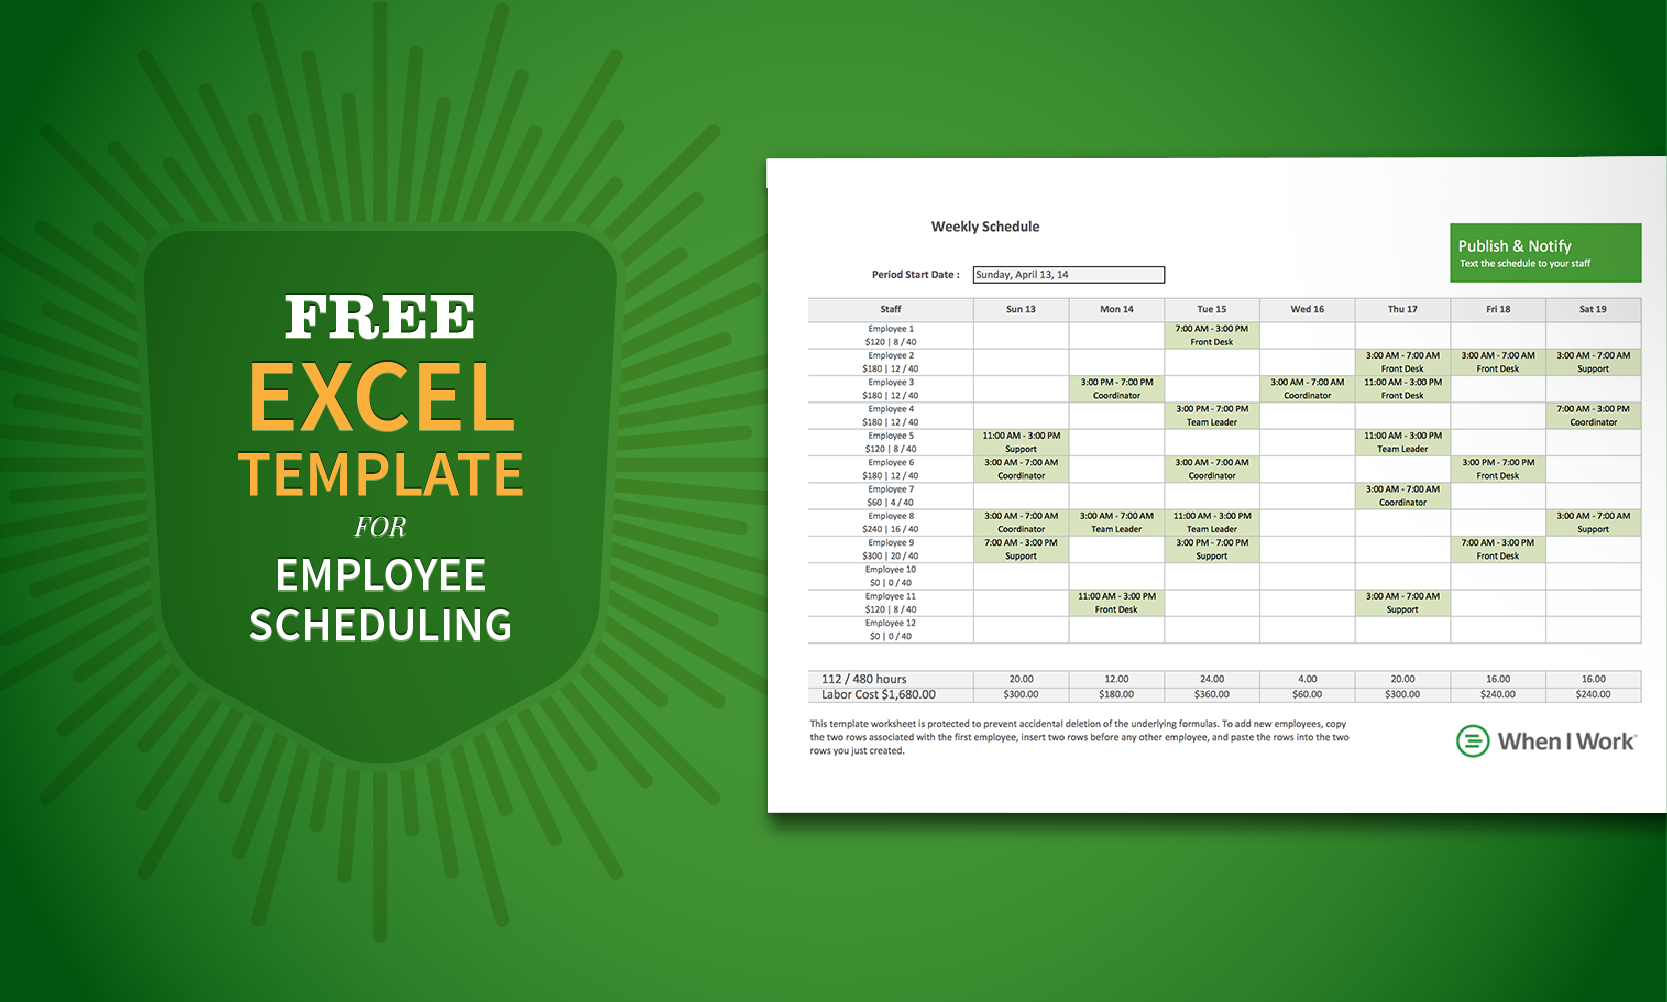 Free Excel Template For Employee Scheduling   When I Work With Employee Shift Scheduling Spreadsheet